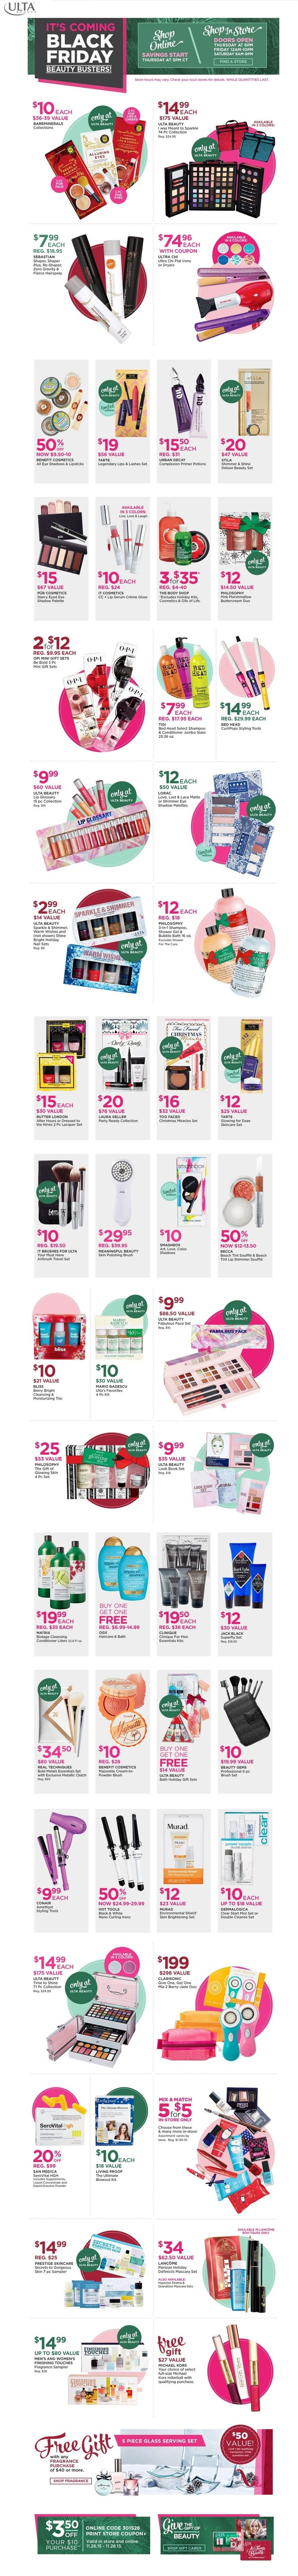 ULTA Black Friday 2015 Deals!! Lots to see and buy for the Holidays!